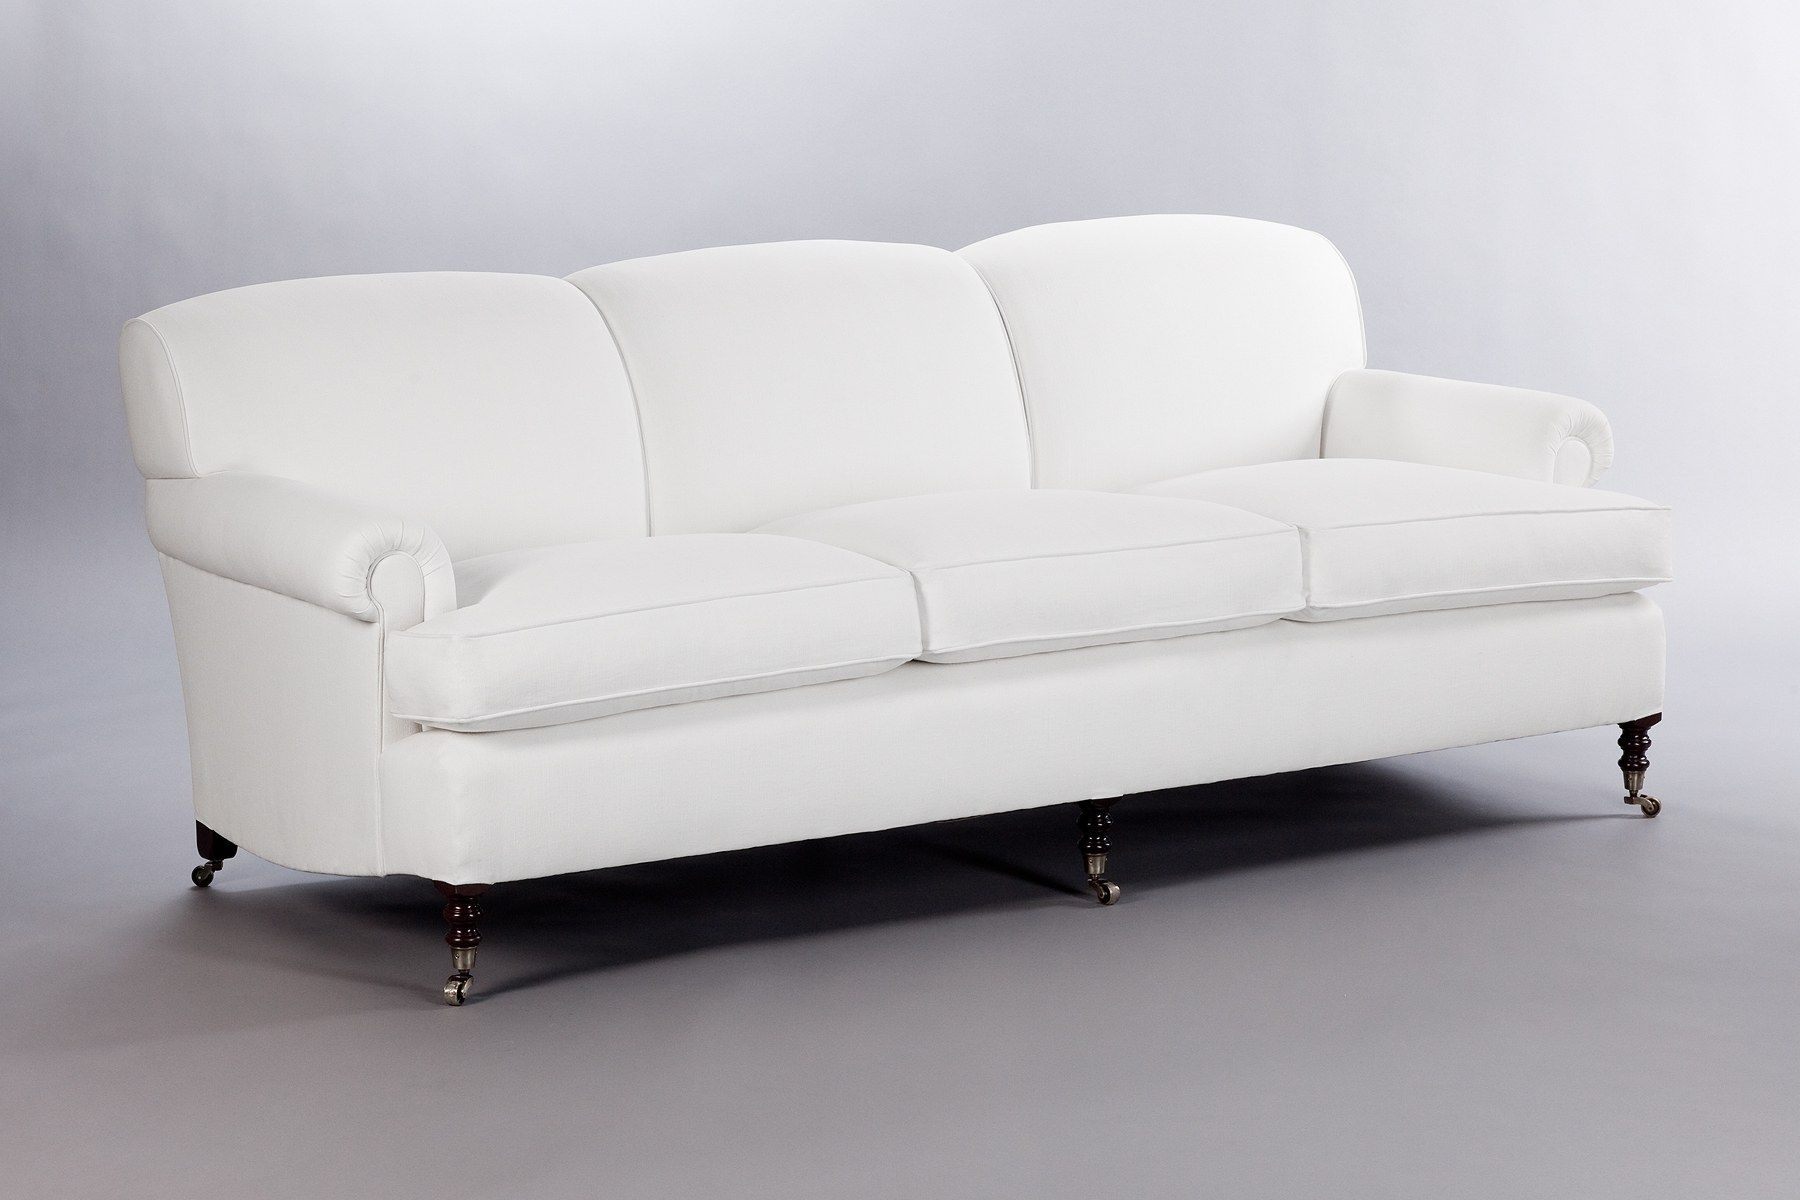 Signature Sofa By George Smith